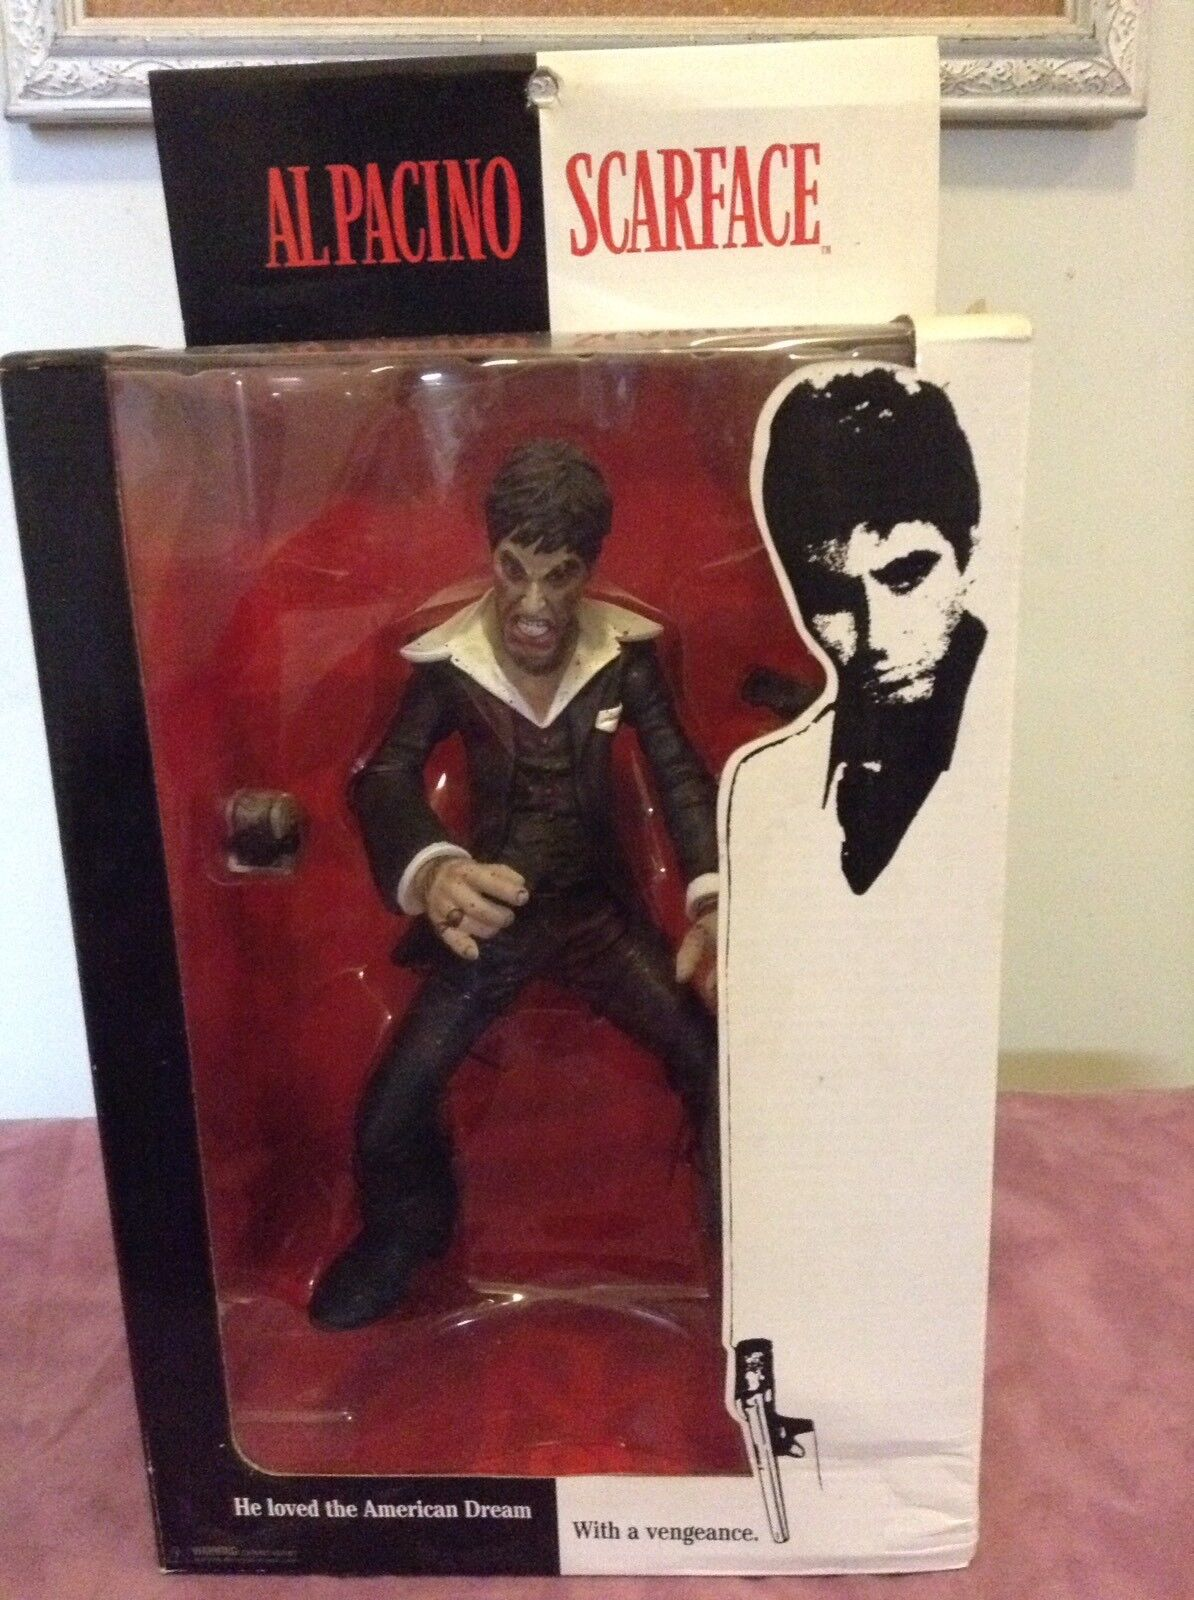 Mezco scarface al pacino 10  action figure the player bloody